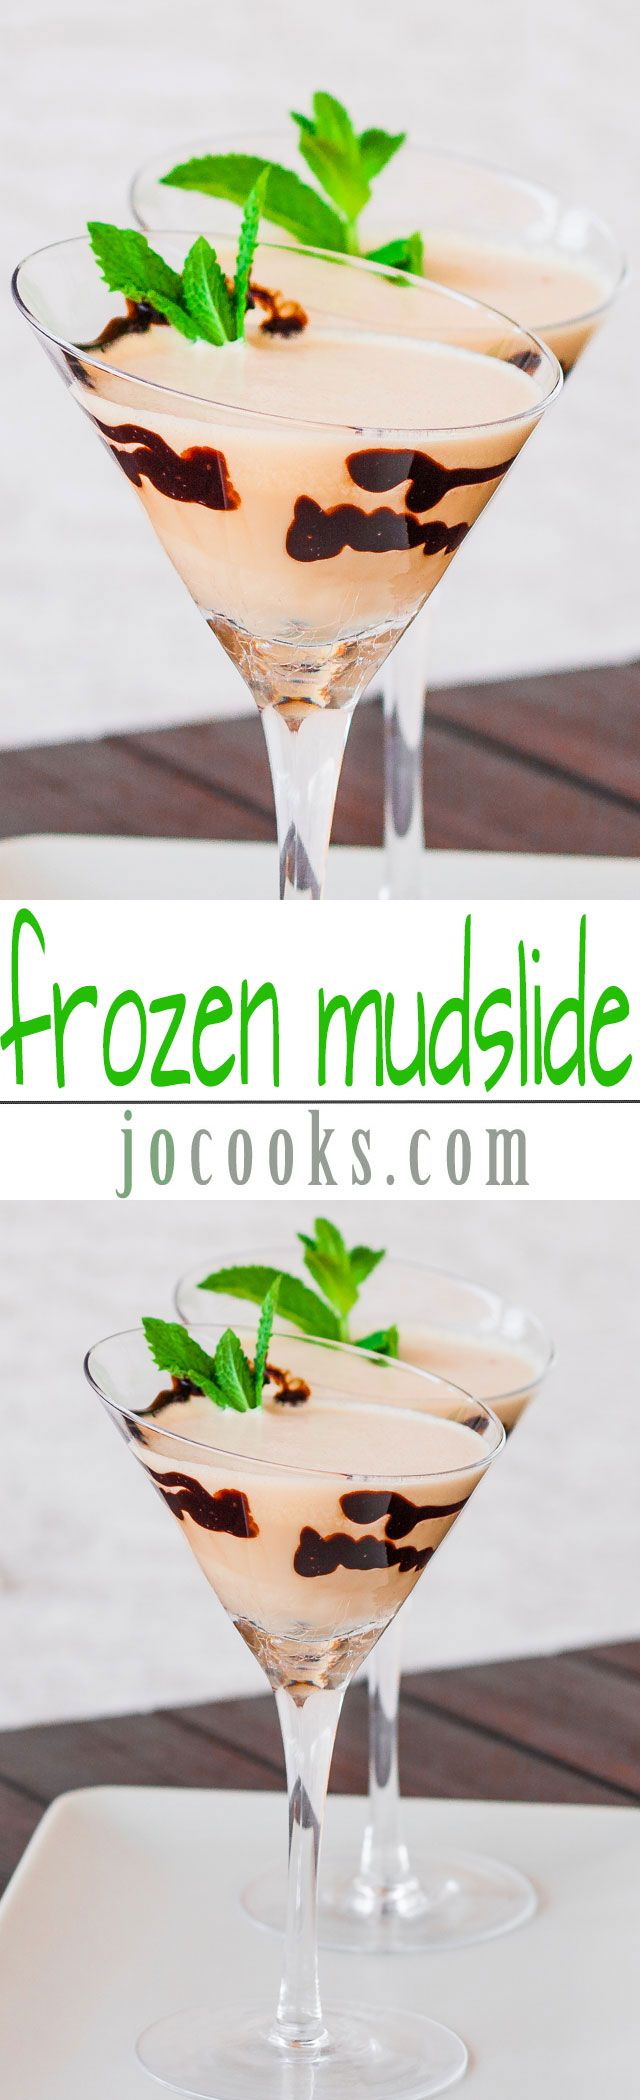 Frozen Mudslide – sweet and frozen, my latest favorite drink and a perfect way to cool off on a hot day.